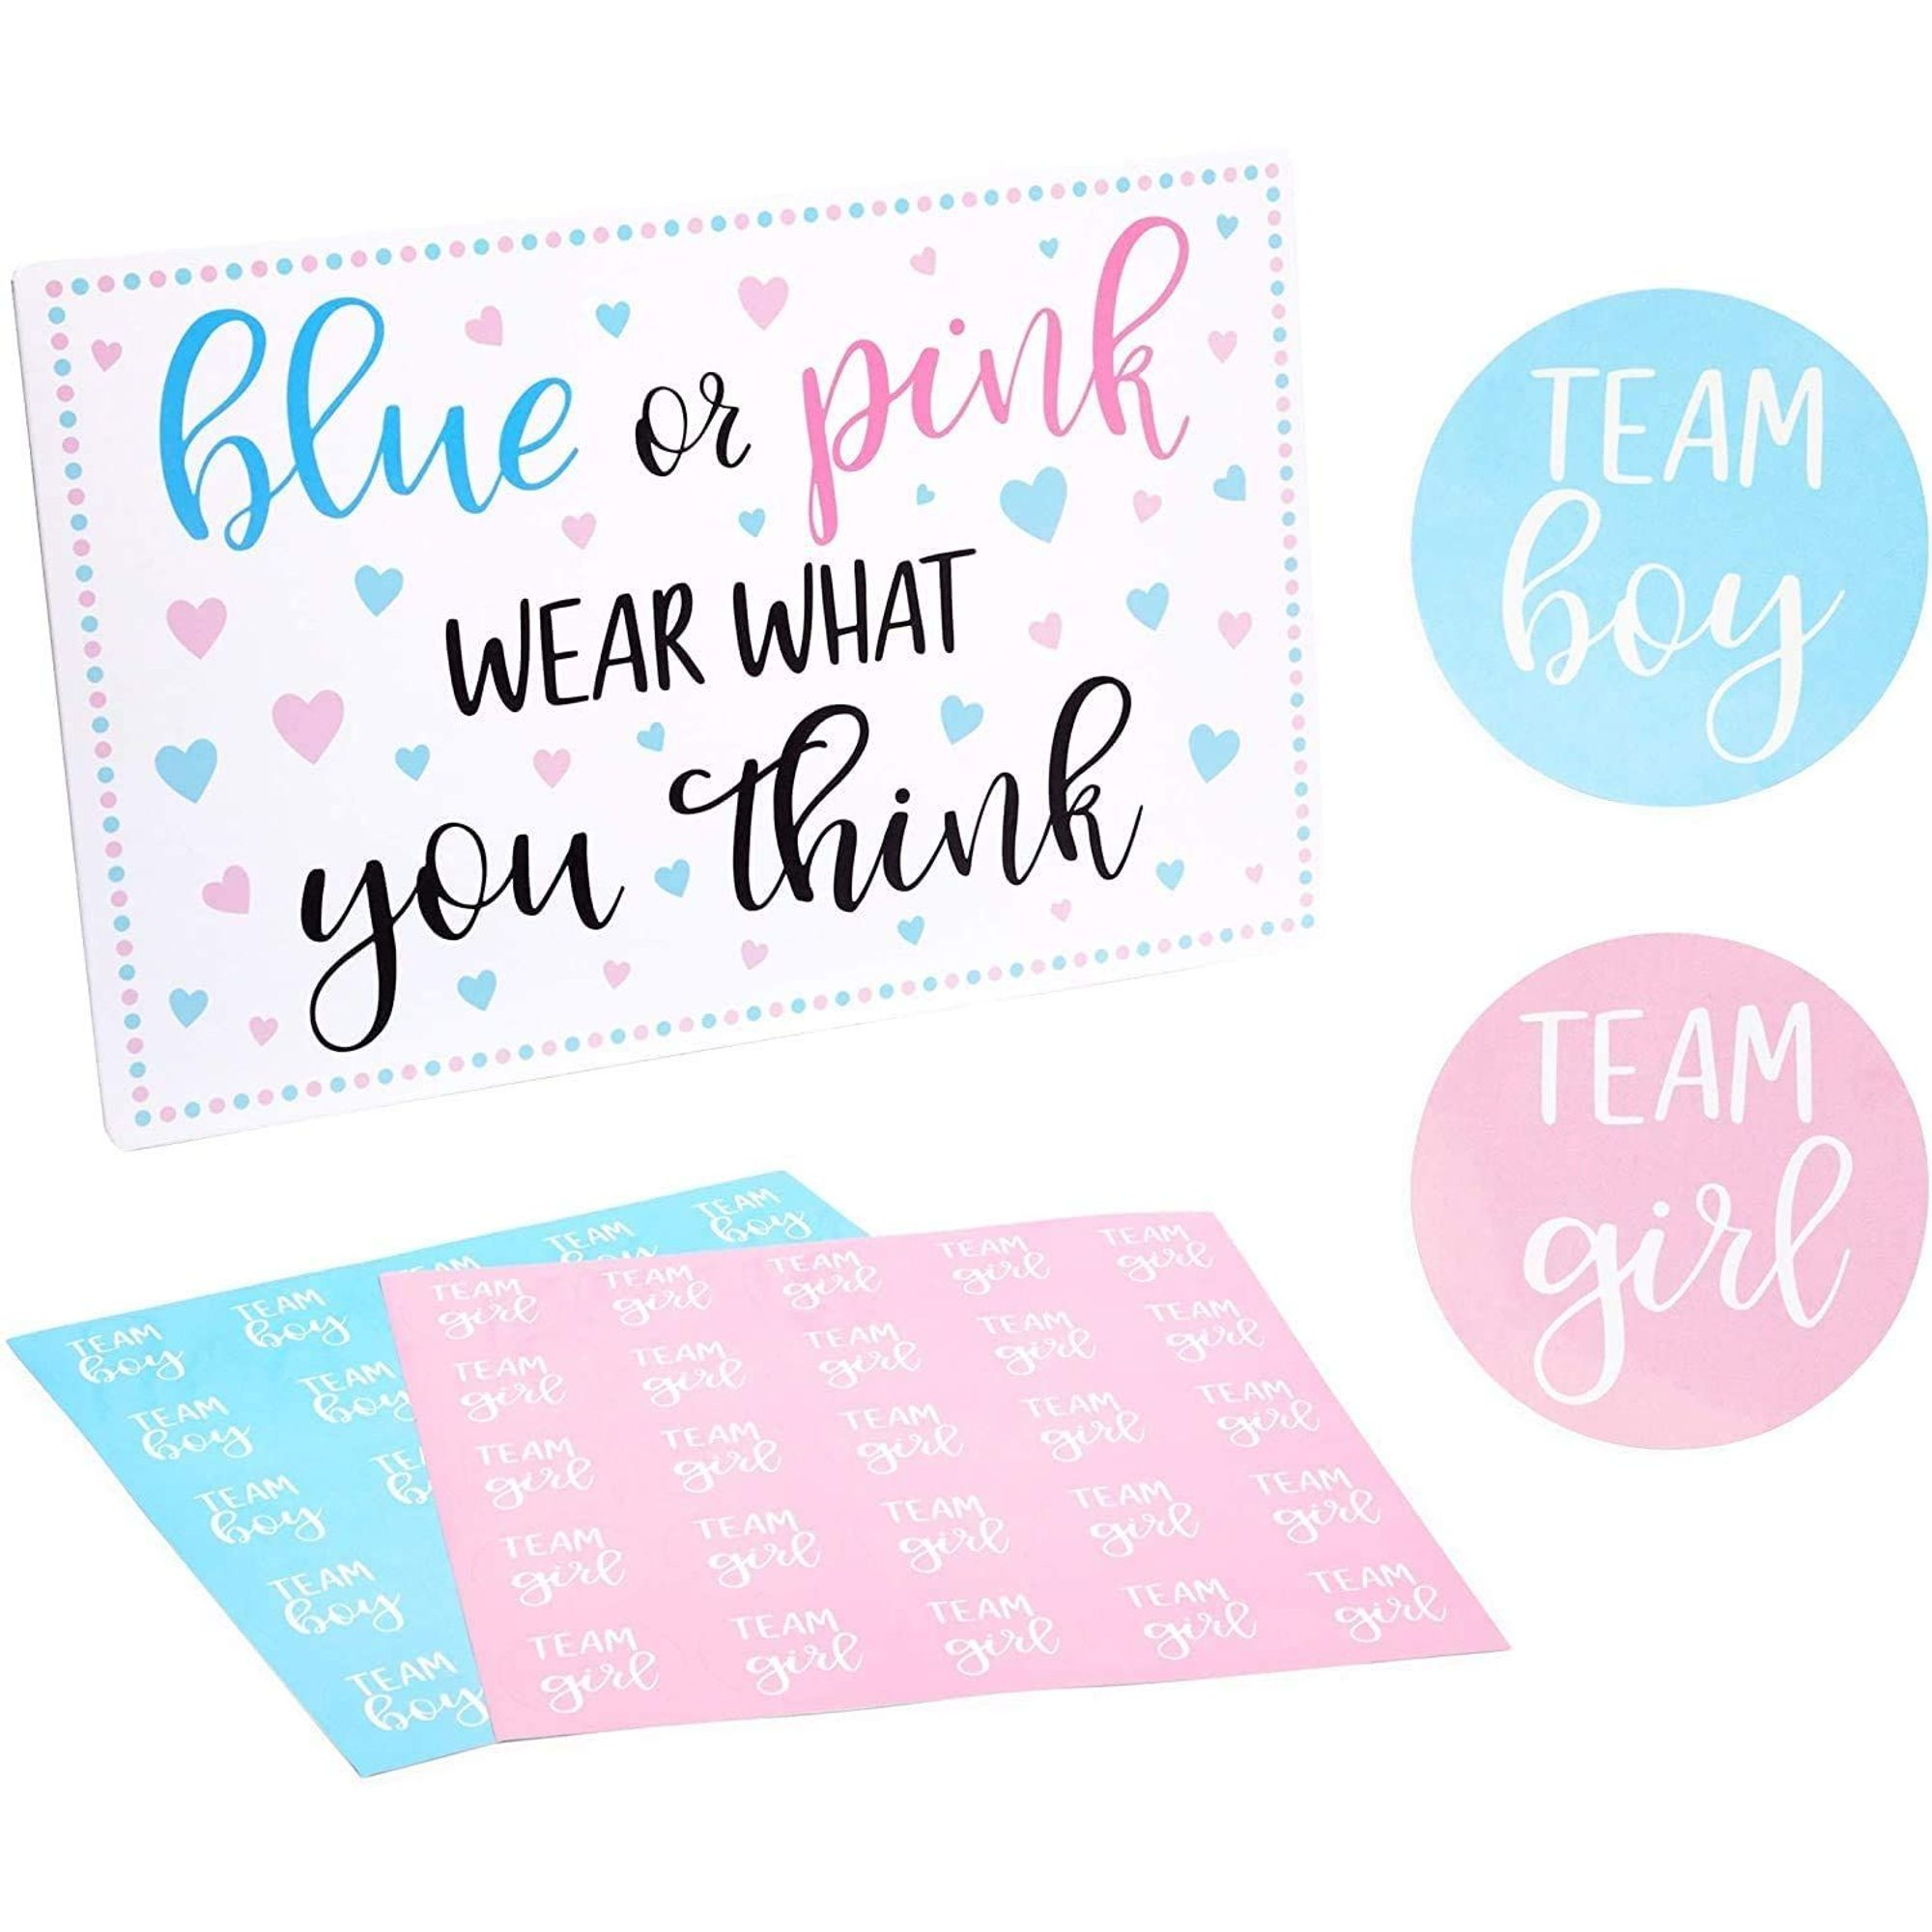 N// A 120Pcs Gender Reveal Stickers Team Boy and Team Girl Baby Shower Sticker Labels for Voting Games and Party Supplies